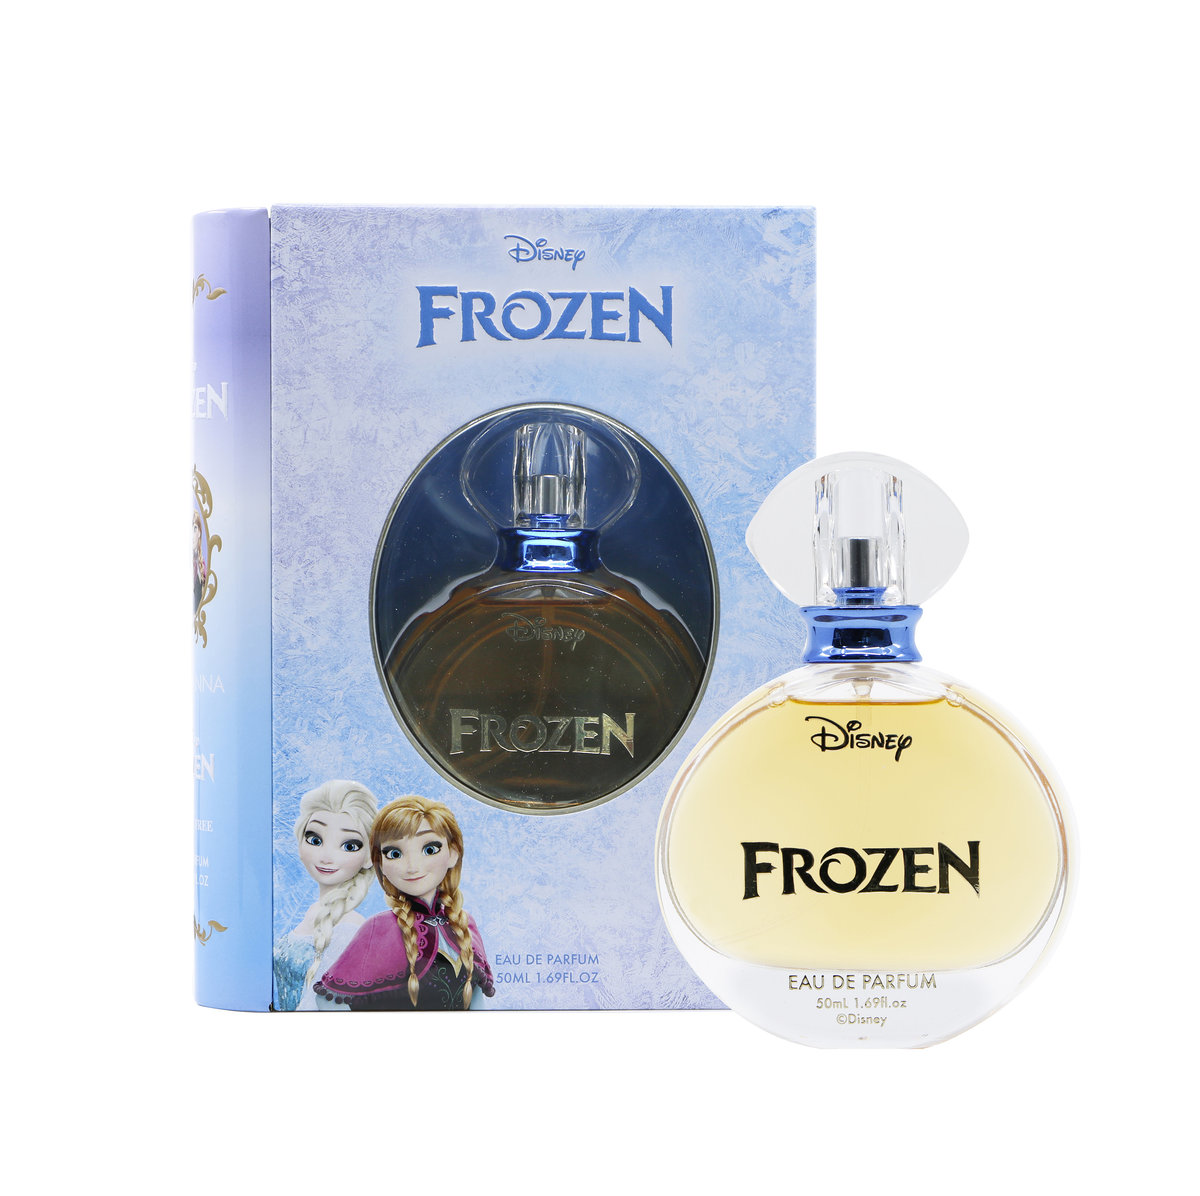 Disney Frozen Storybook Style Eau de Parfum 50ml (Disney Licensed Product)